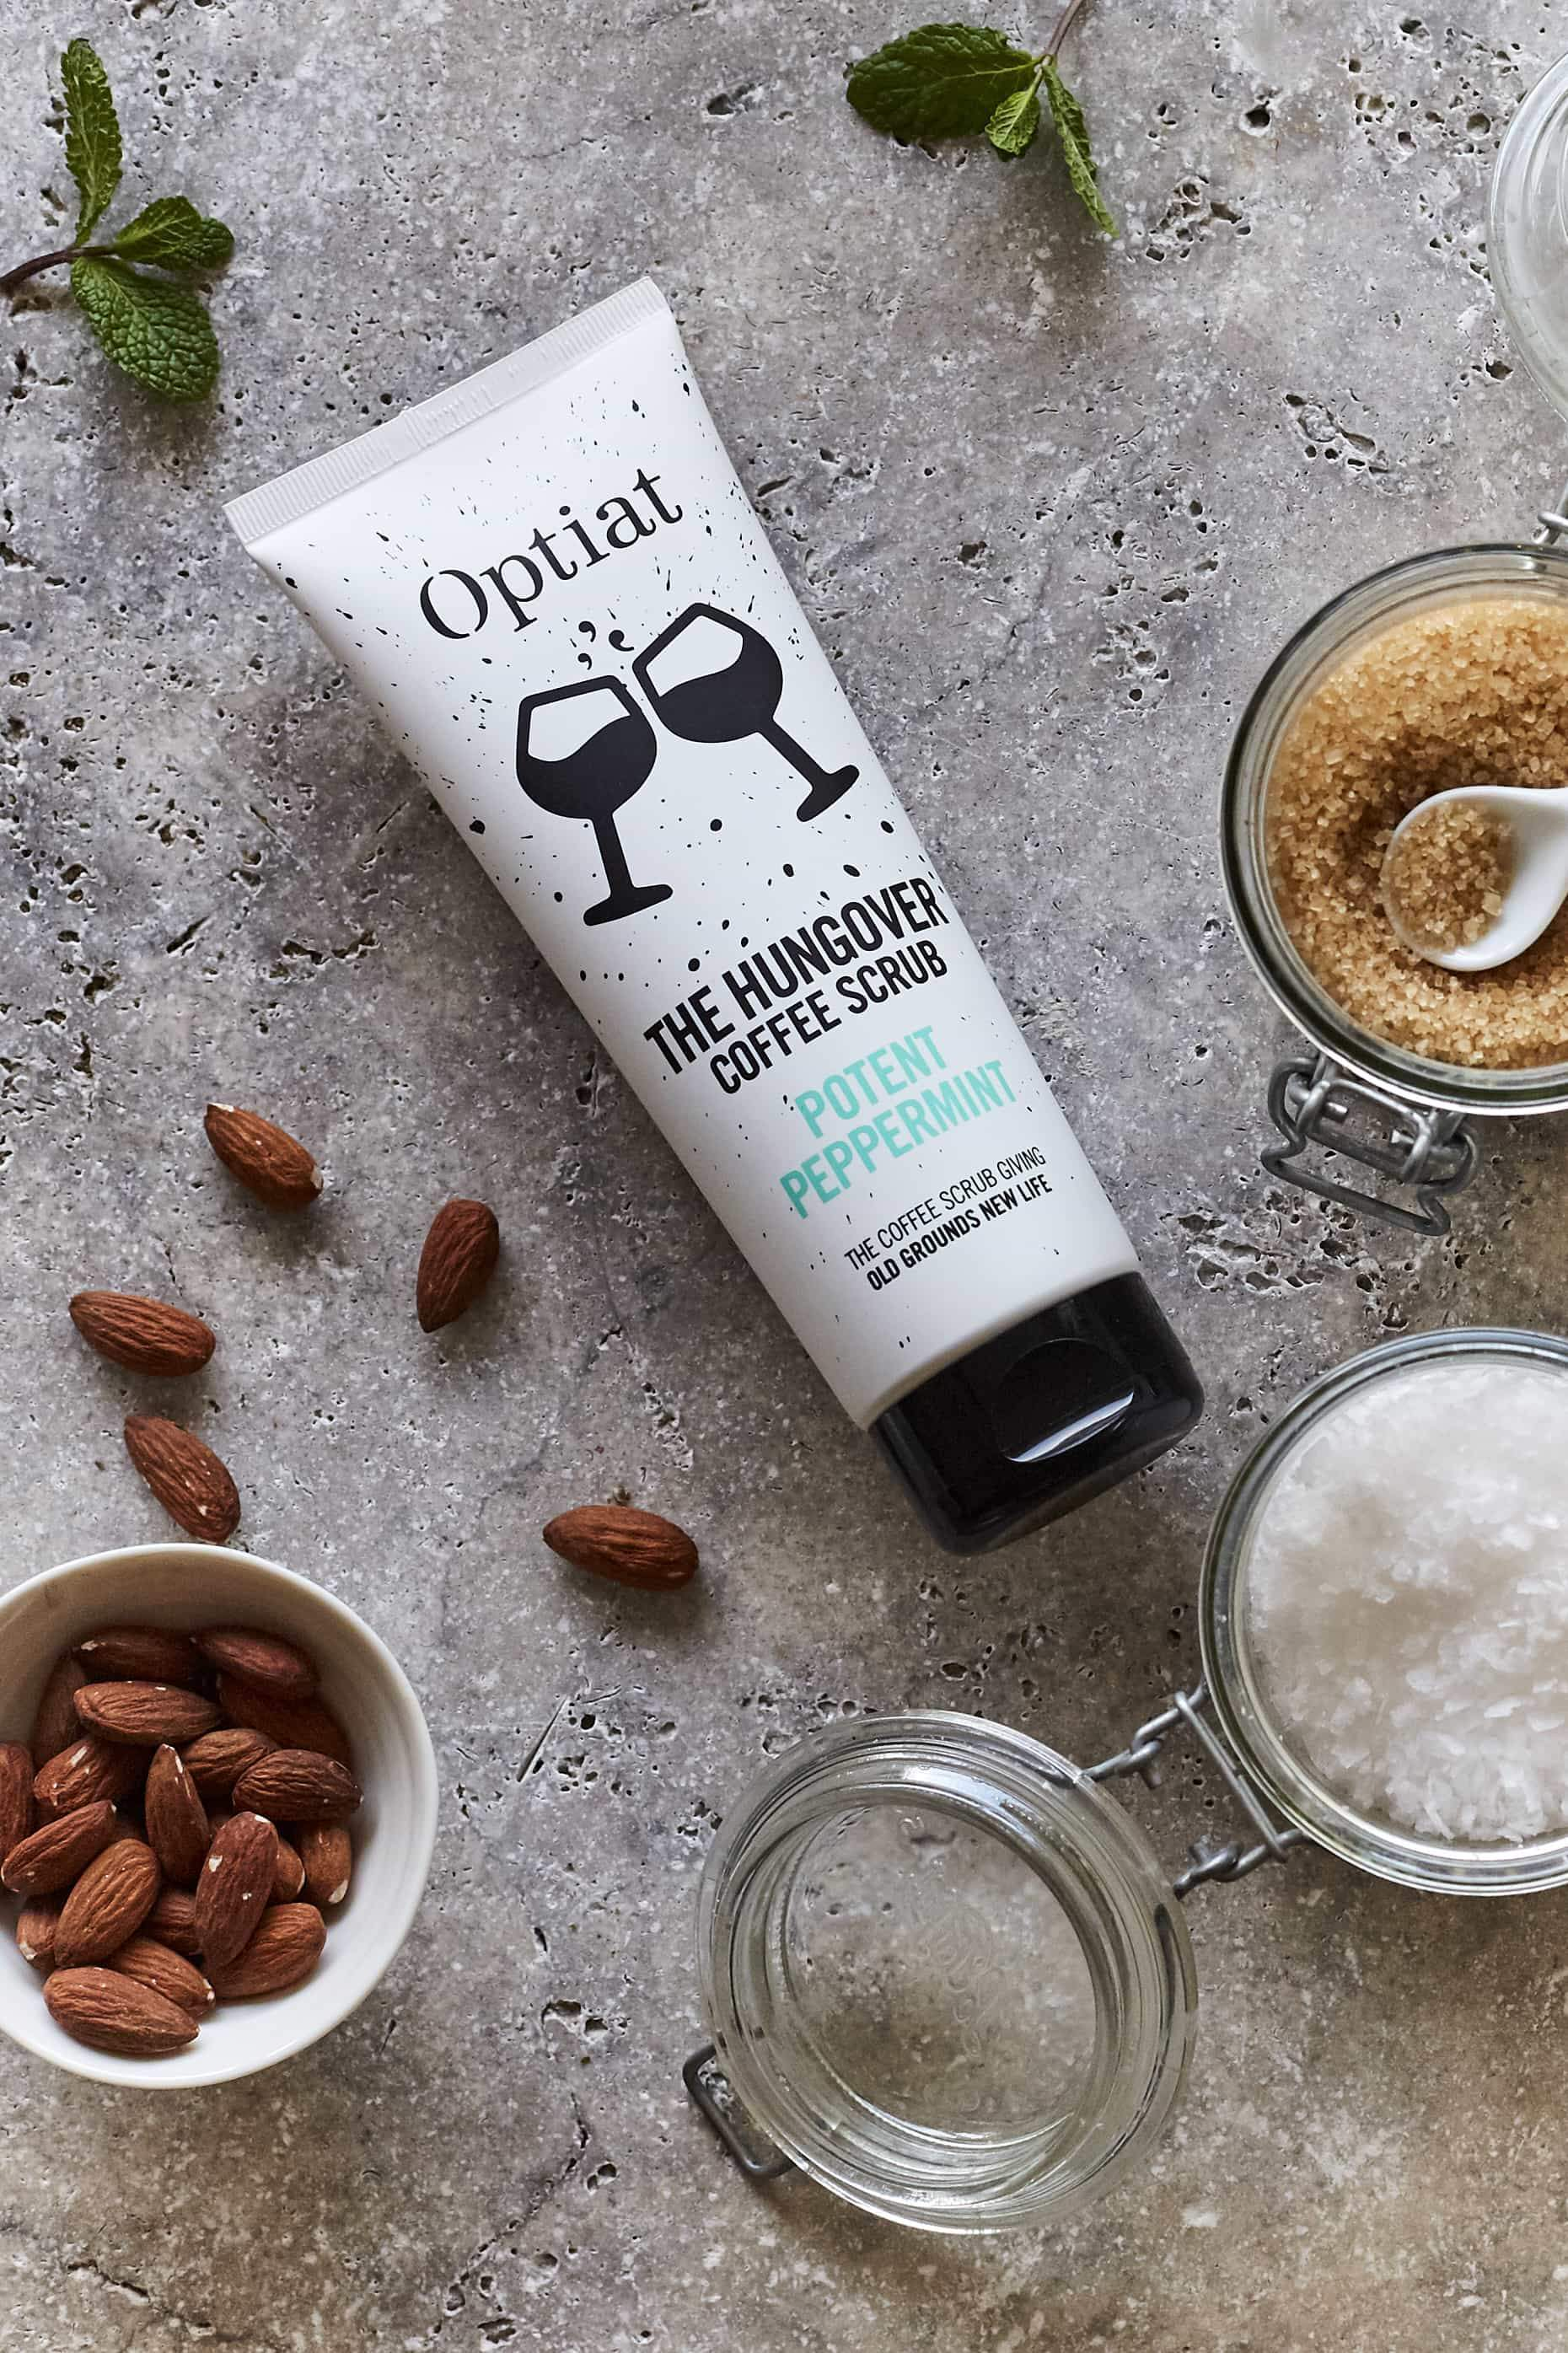 """OPTIAT COFFEE SCRUB - This one will help the Christmas and New Years hangovers. We love their Potent Peppermint Coffee Scrub.""""The Hungover"""".These guys collect coffee rounds from coffee shops all over London and turn them into coffee scrubs that make your body feel like a 10 when you're actually feeling like a 2 after six too many G&T's .£9.99optiat.com"""